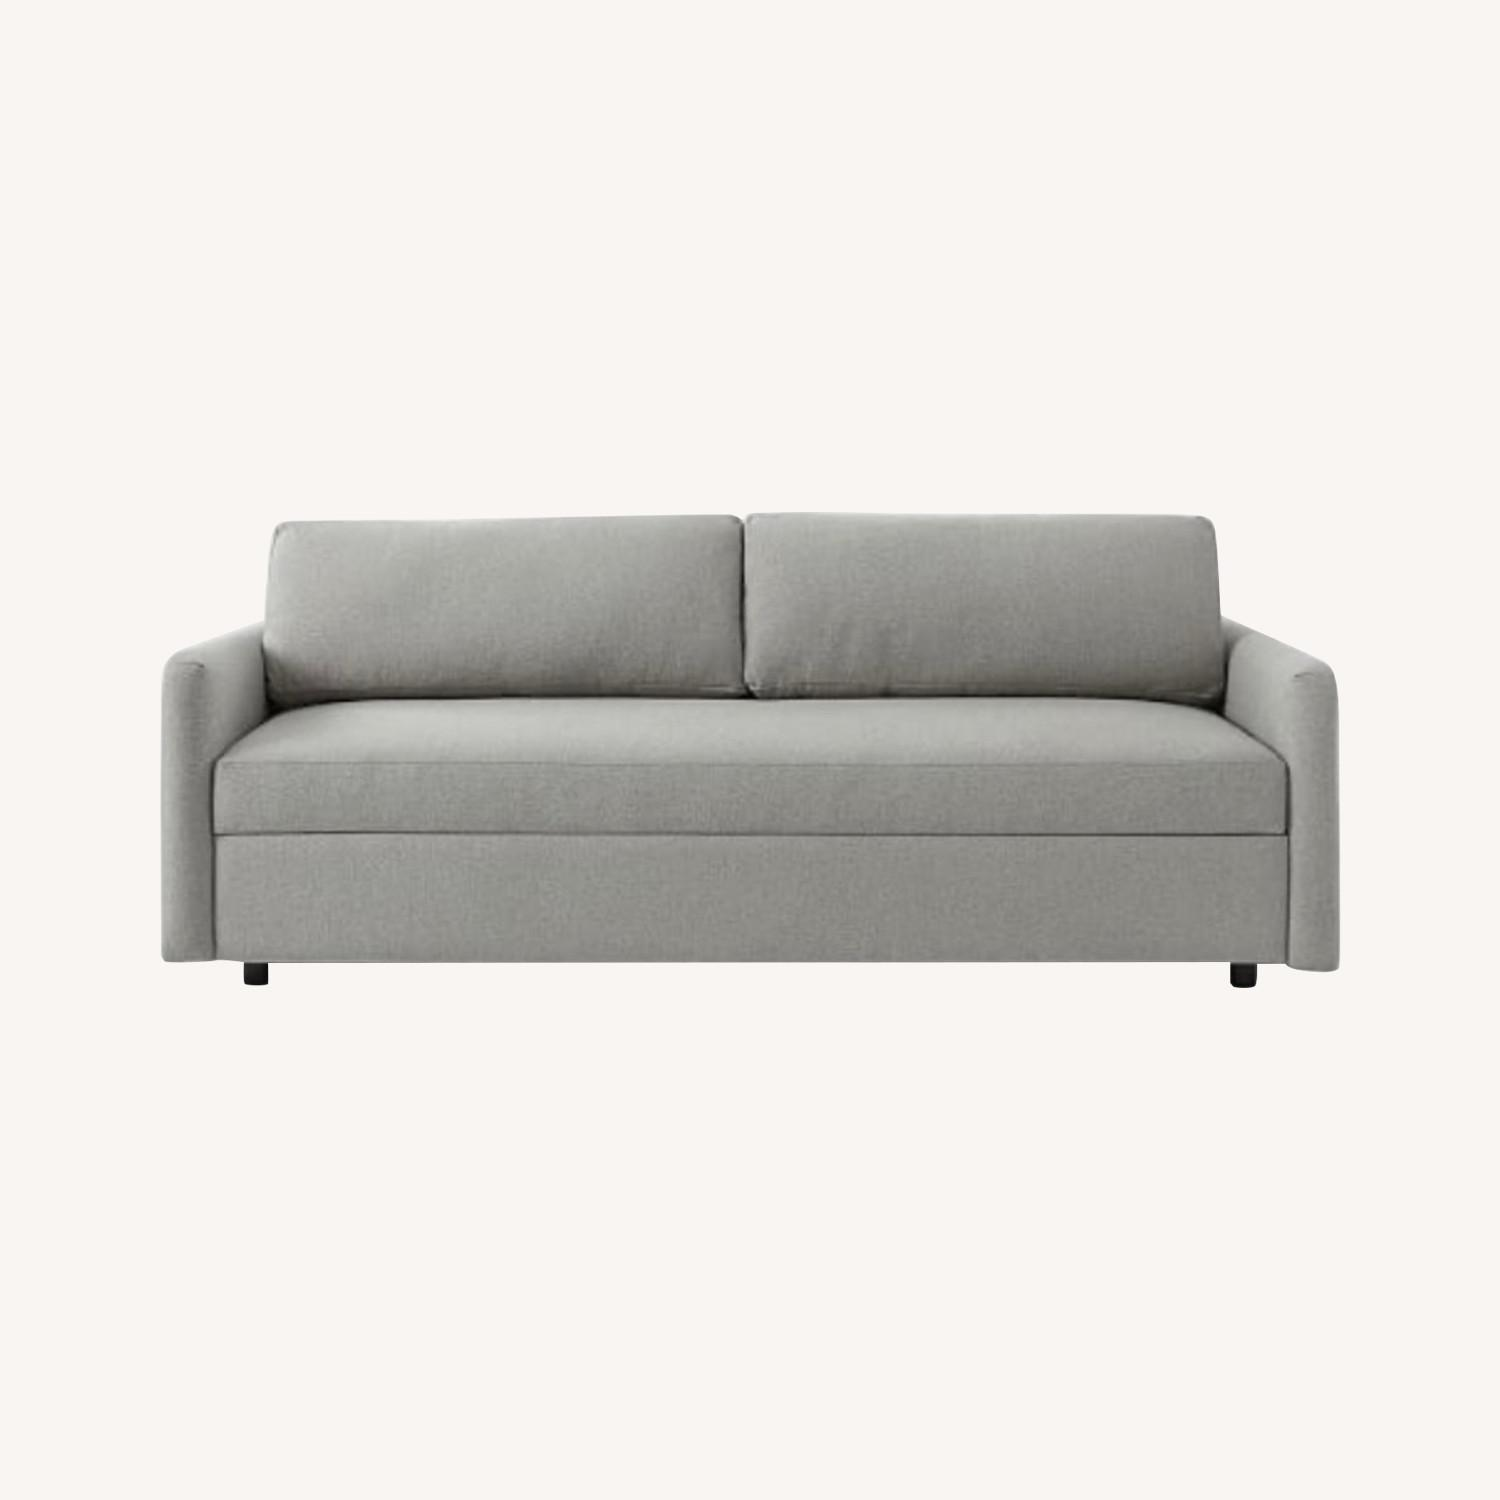 West Elm Clara sleeper sofa - image-0